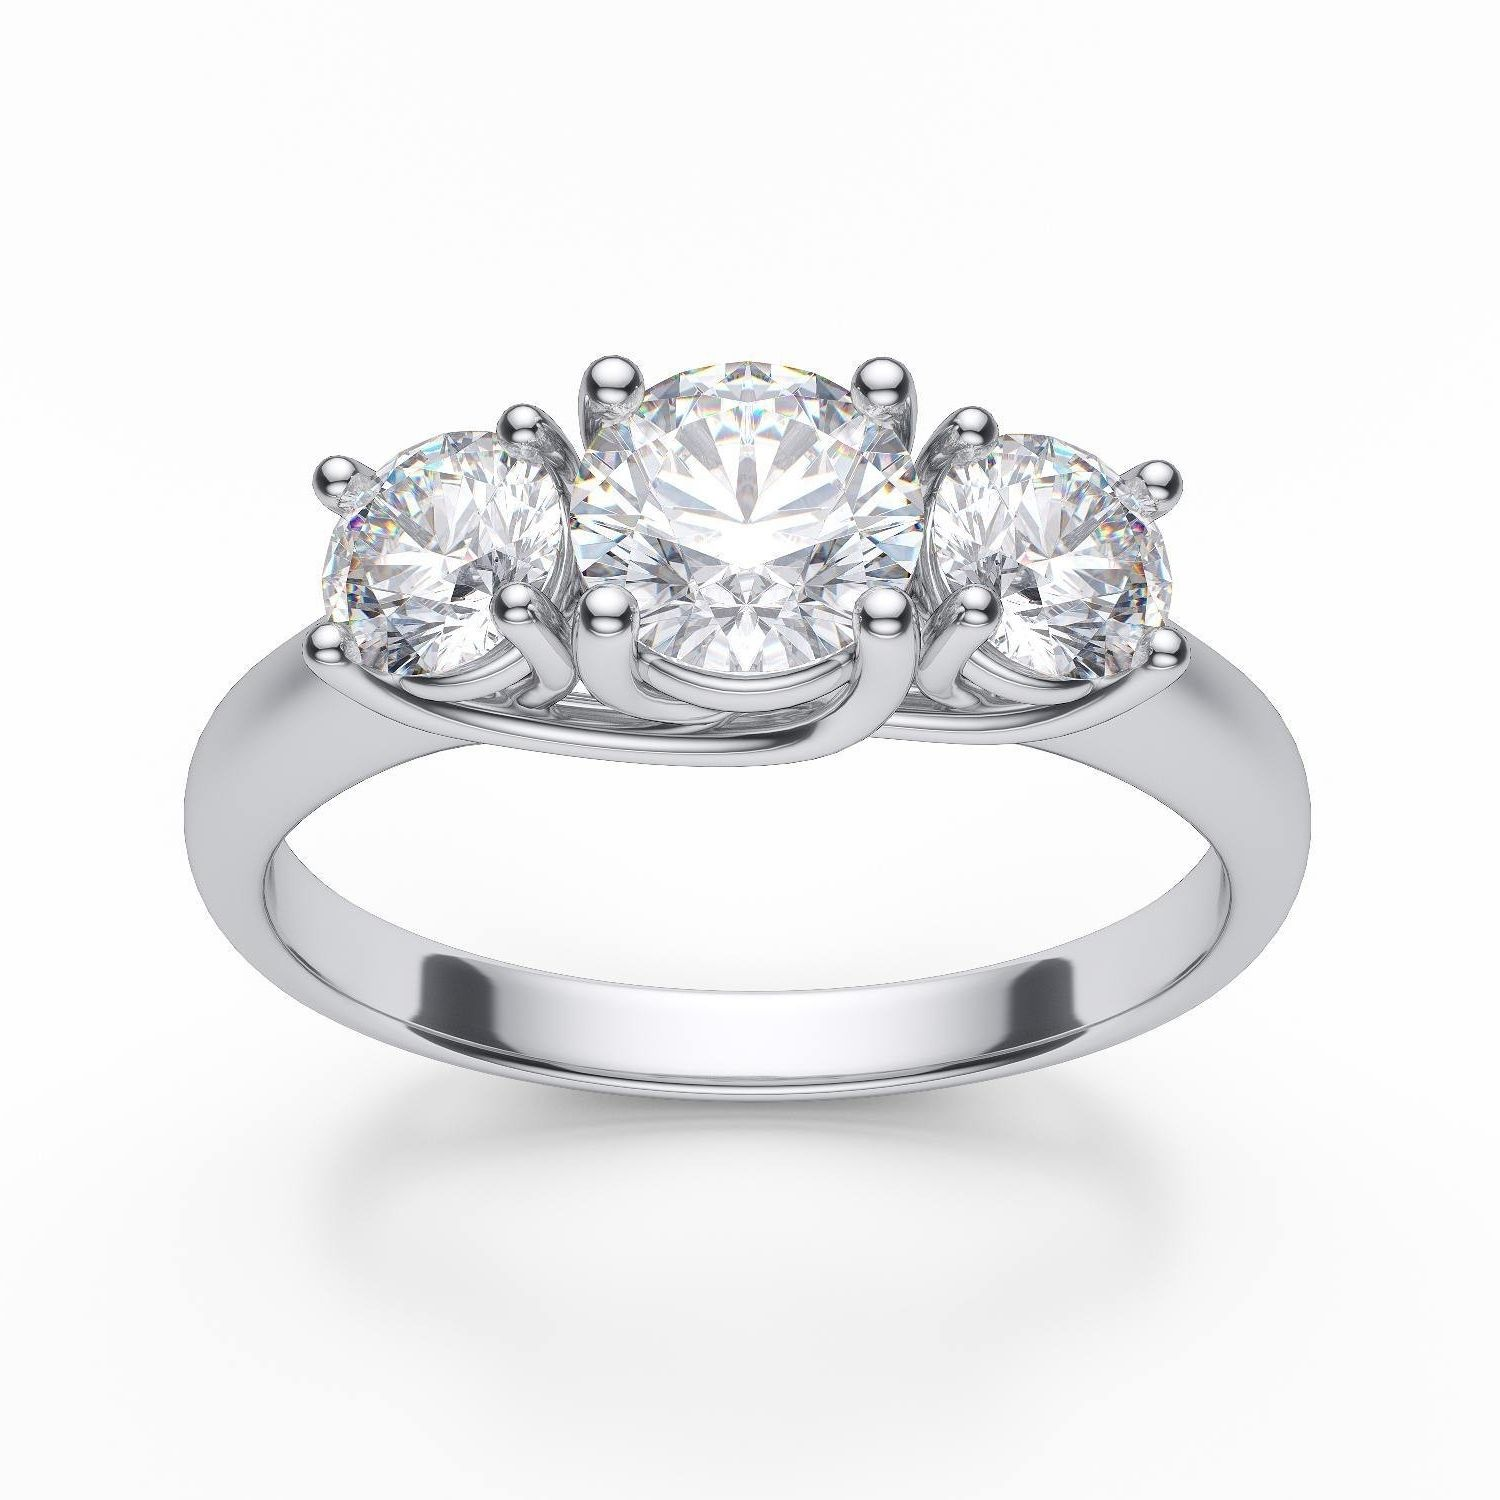 wedding engagement rings products campbell round jewellers ireland brilliant halo ring dublin peridot diamond white gold